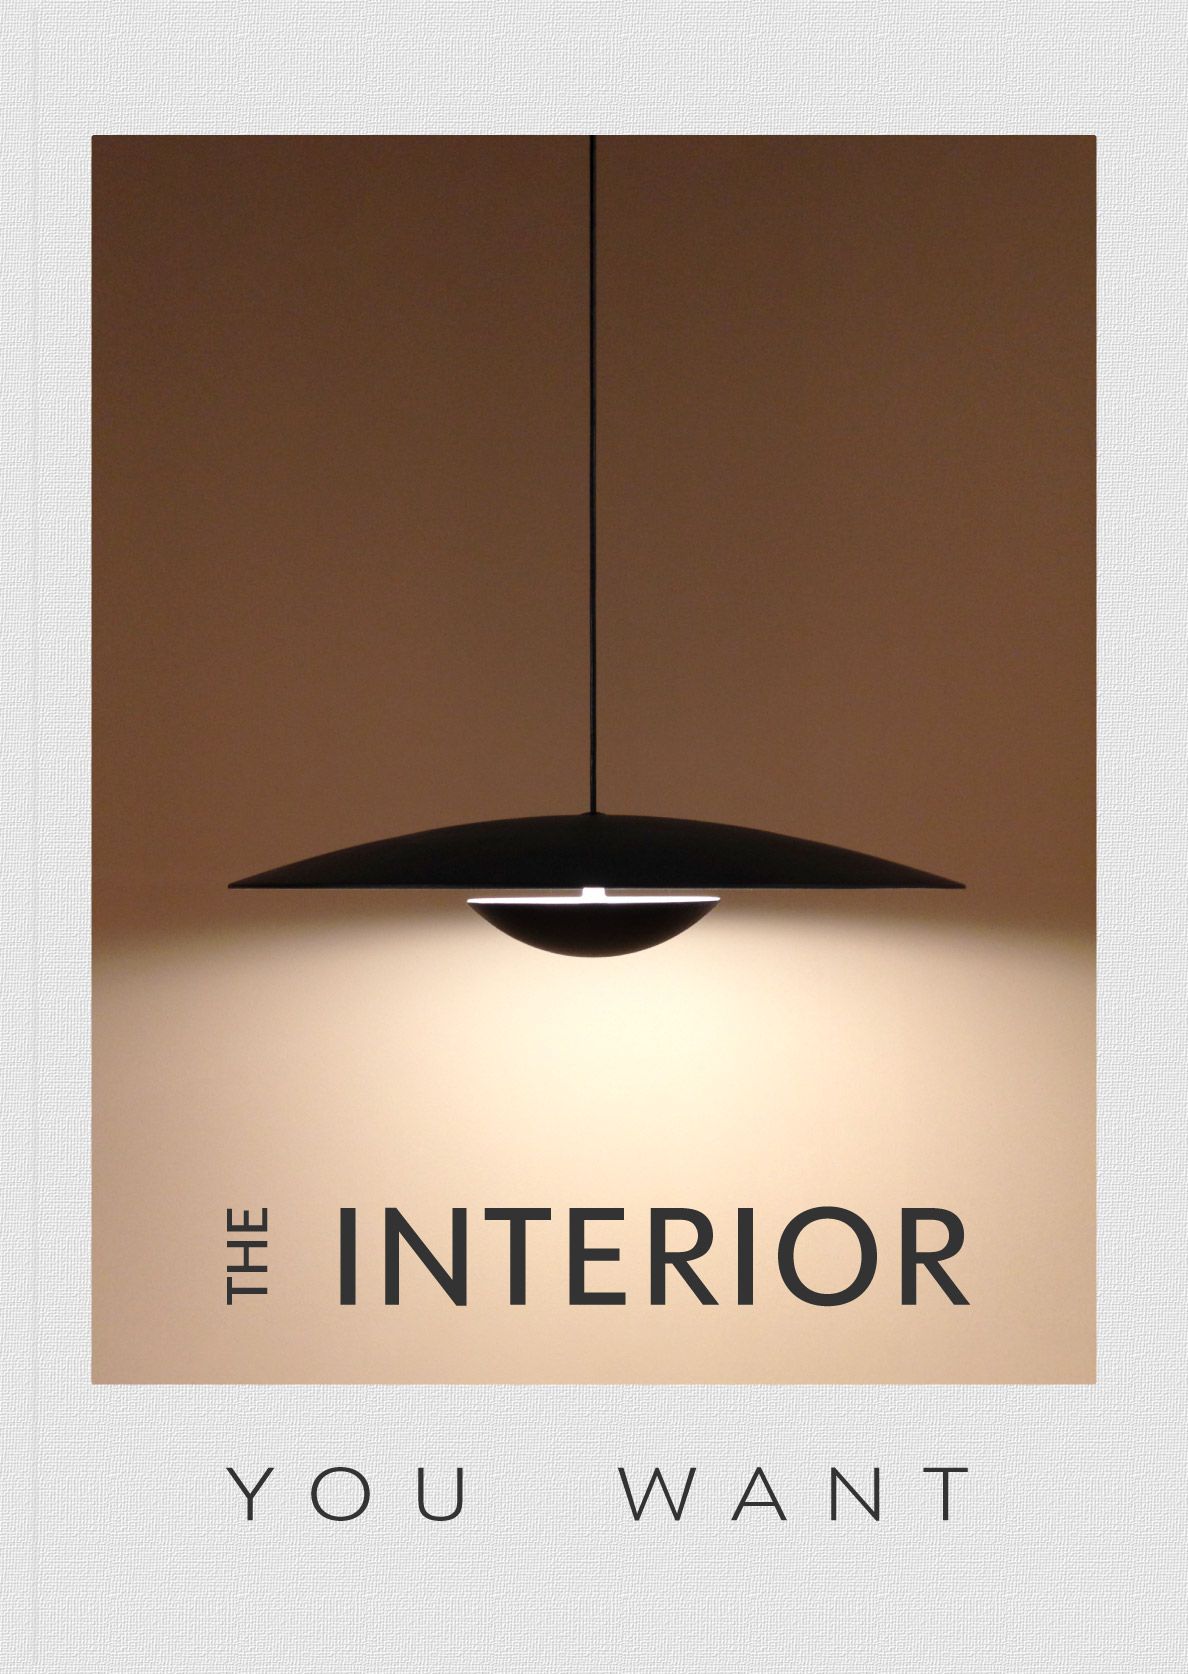 The interior you want guide by Studio Hazeldean